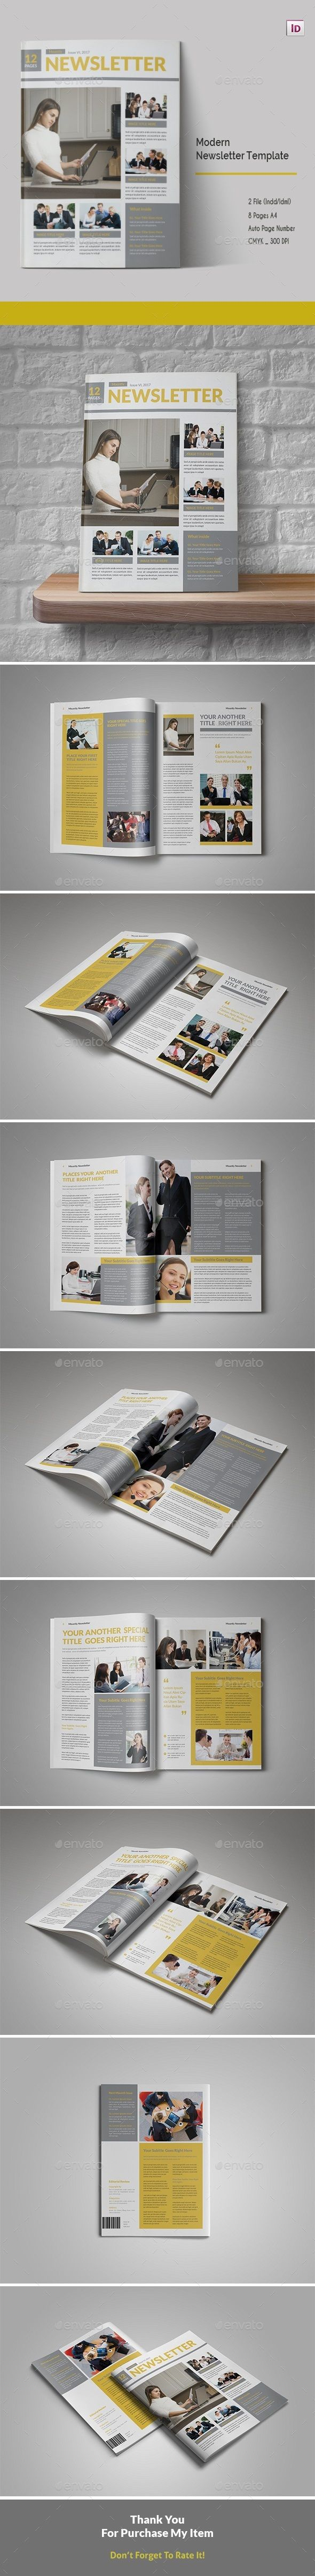 Modern #Newsletter Template - Newsletters Print #Templates Download here: https://graphicriver.net/item/modern-newsletter-template/19356792?ref=alena994